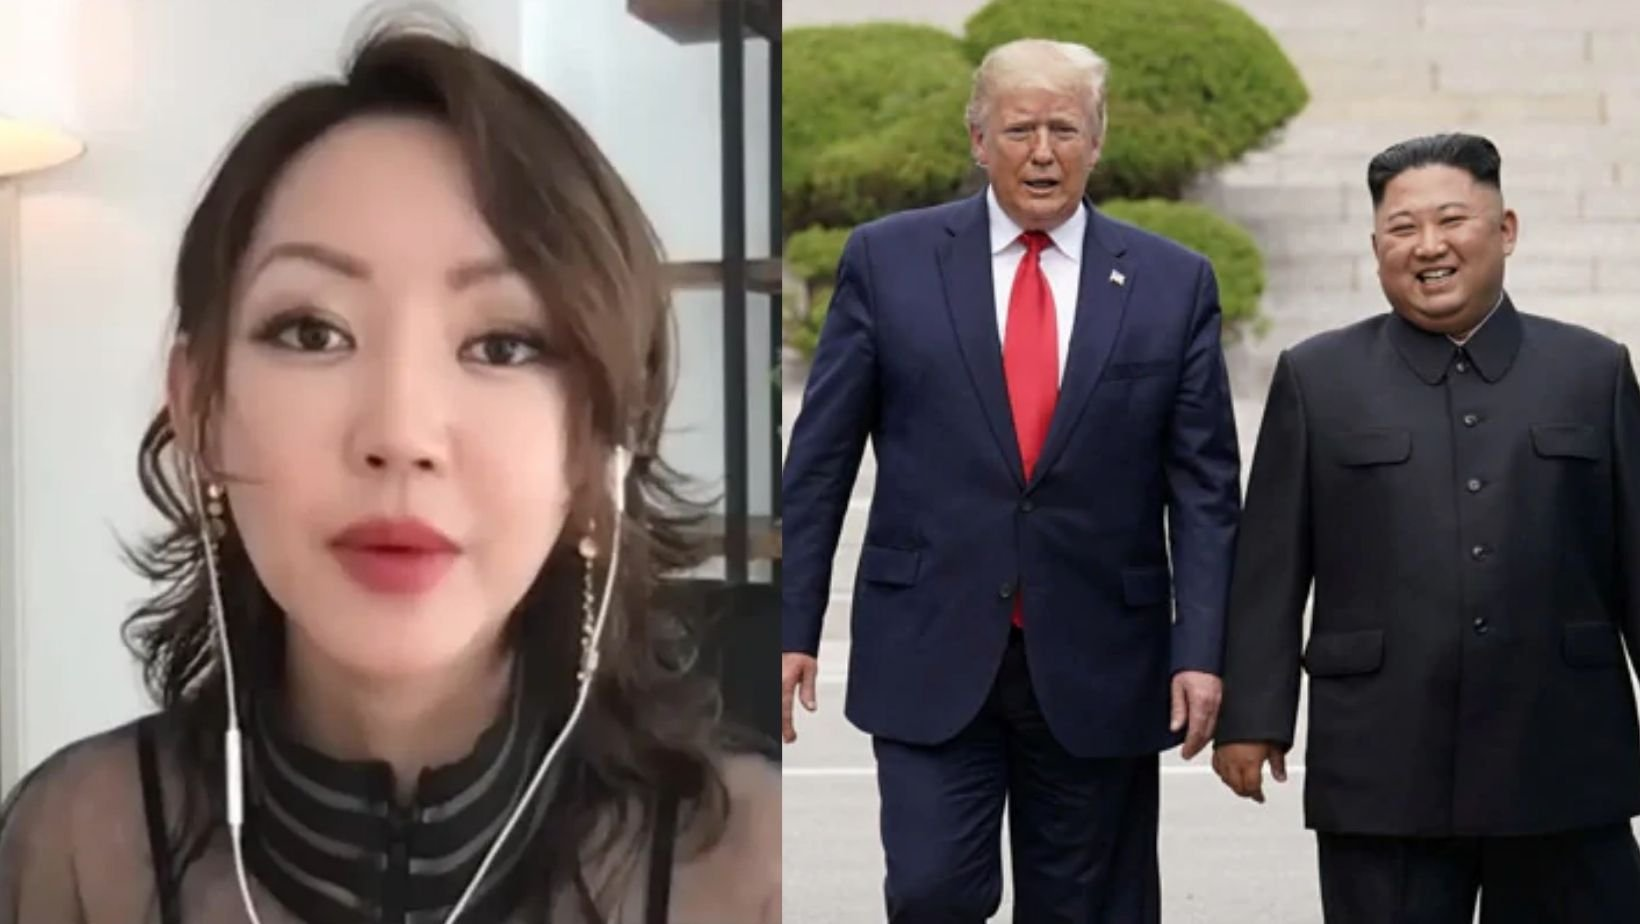 small joys thumbnail 11.jpg?resize=412,232 - Defector Claims That USA Is Worse Than North Korea, Adding That Americans Chose To Be Brainwashed Rather Than Seeing The Truth